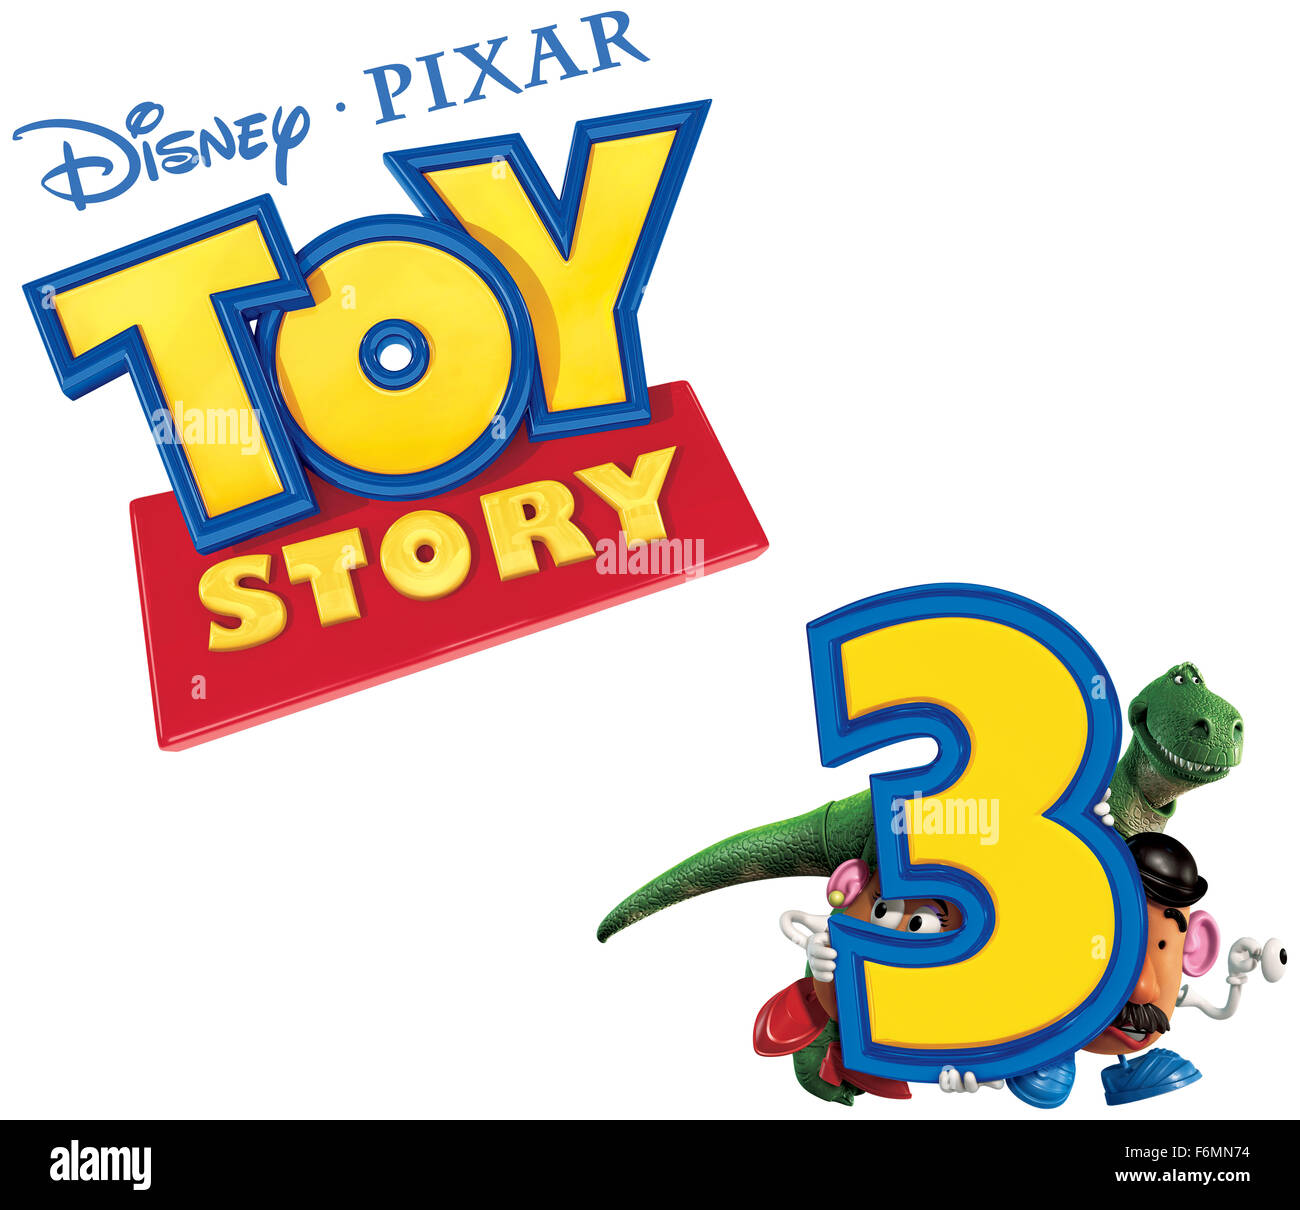 Toy Story 3 Poster Stock Photos Toy Story 3 Poster Stock Images